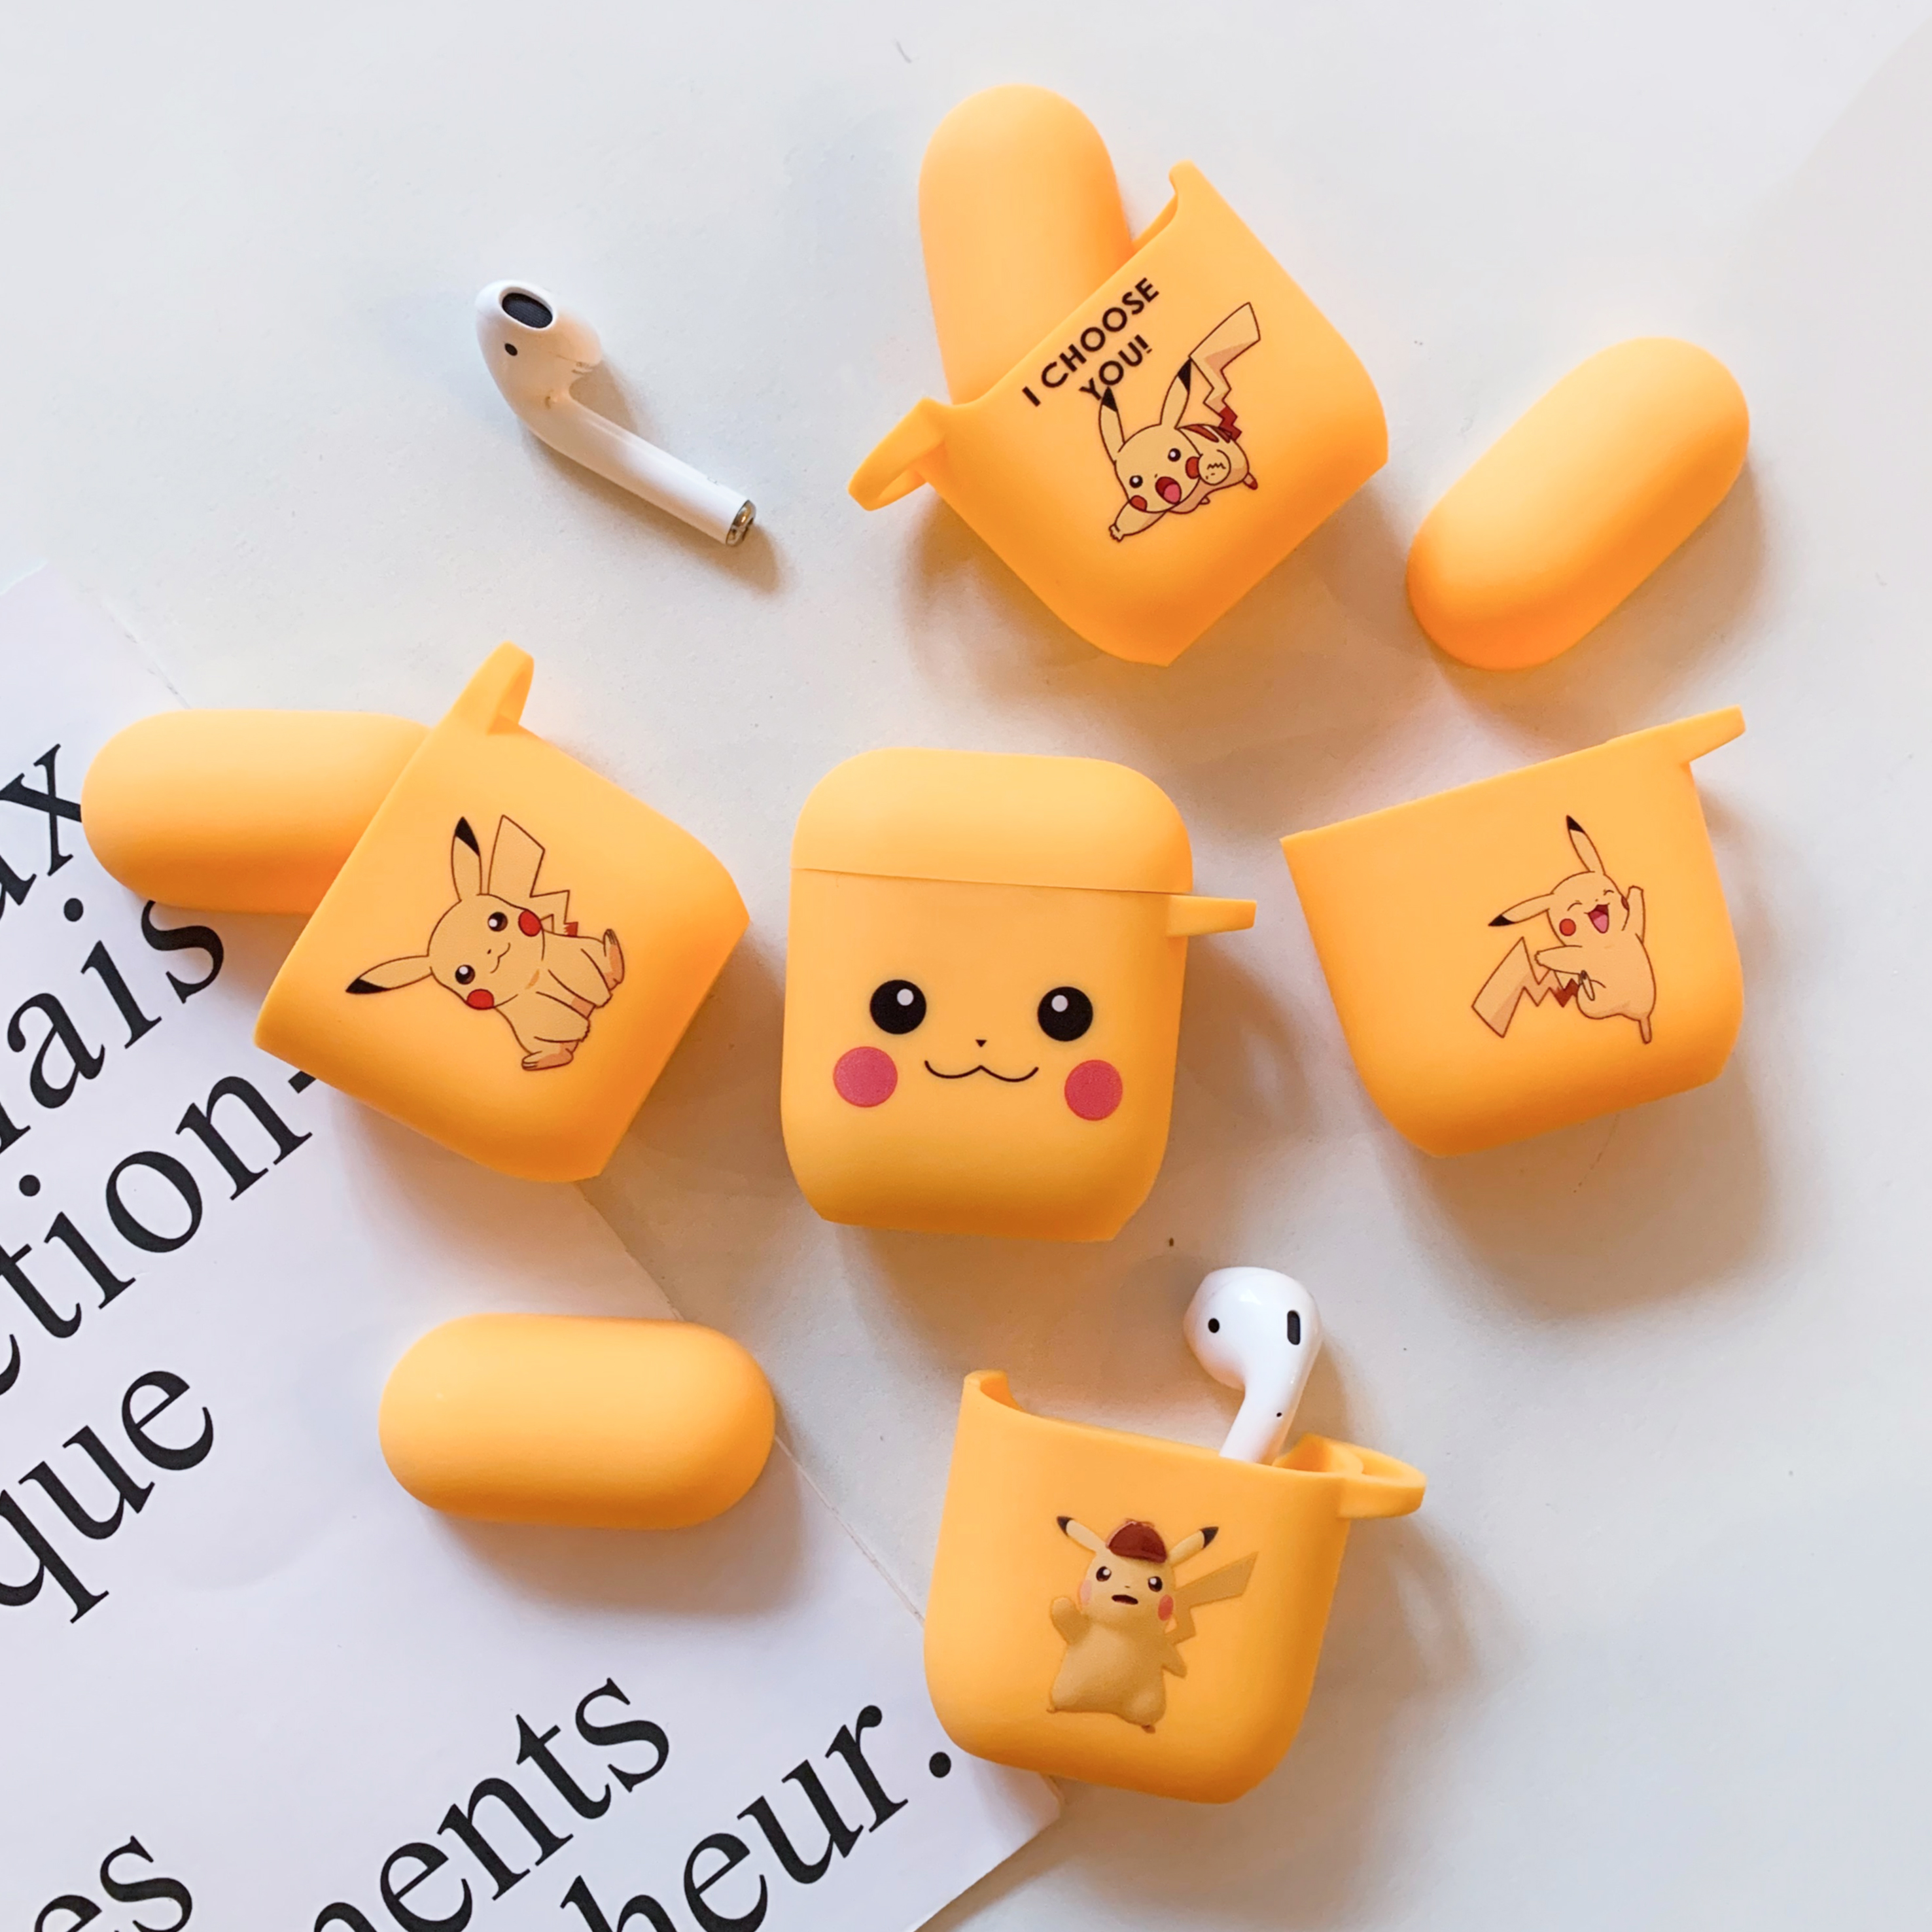 Pokemon <font><b>Pikachu</b></font> Wireless Bluetooth Earphone <font><b>Case</b></font> For Apple <font><b>AirPods</b></font> Silicone Headphones <font><b>Cases</b></font> For Airpods1/2 Protective Cover image